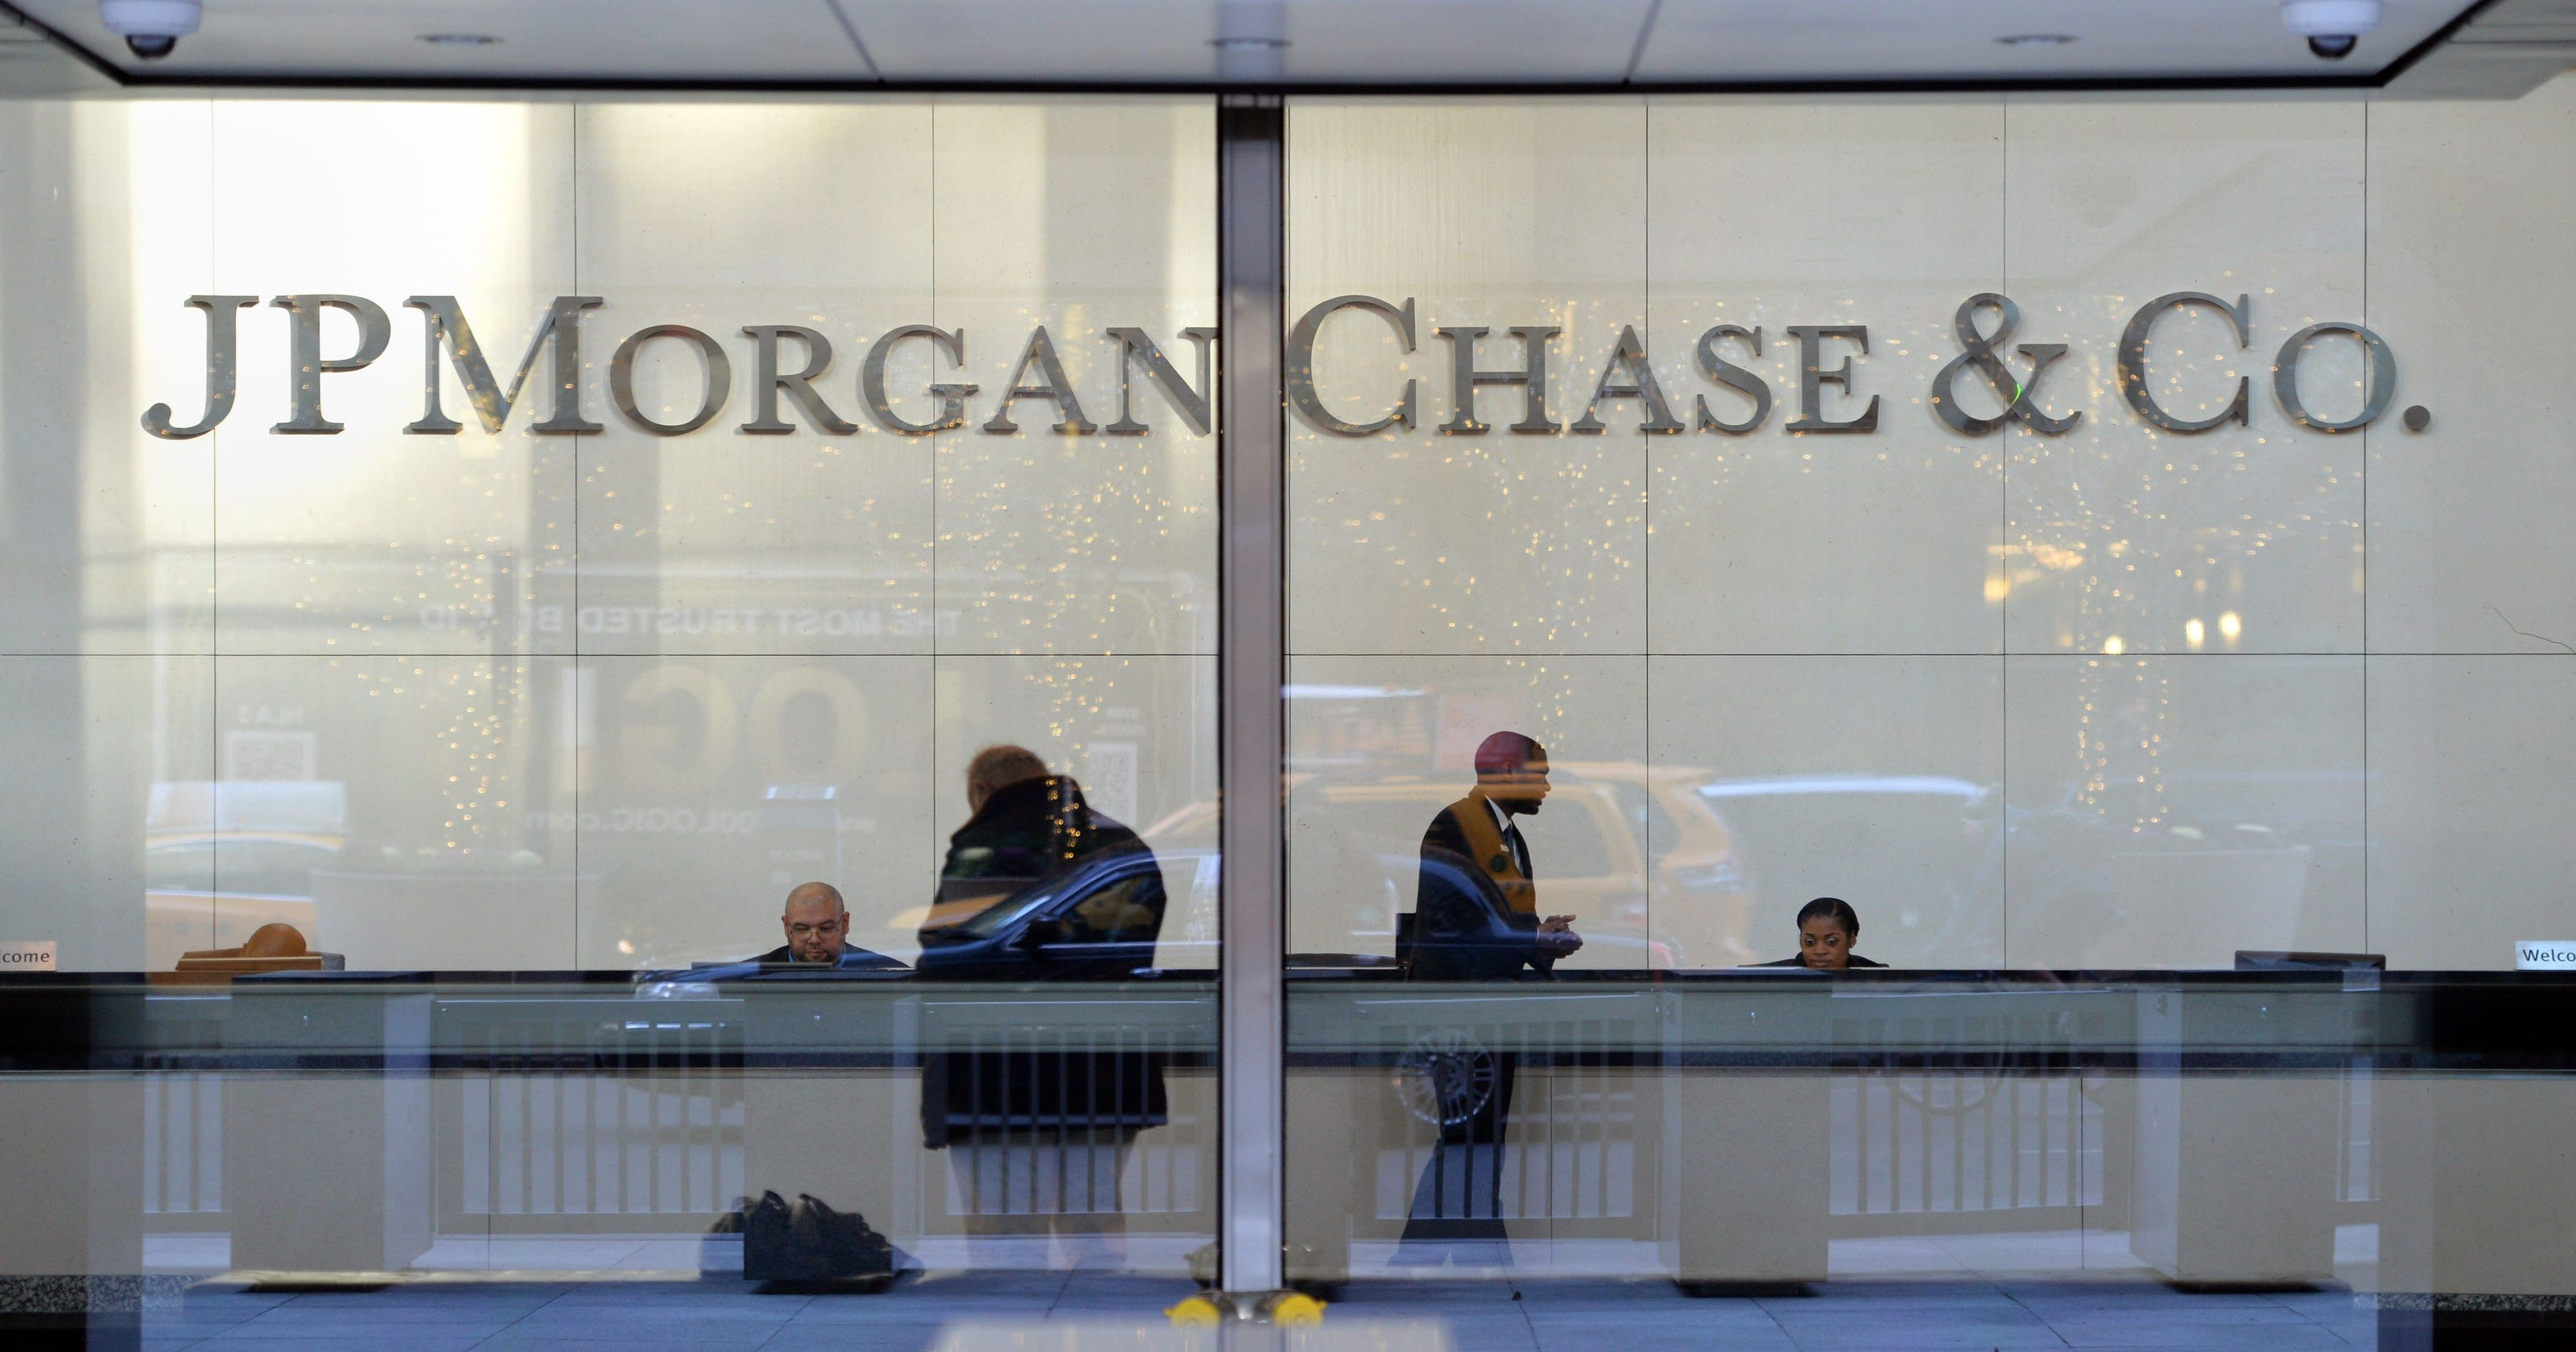 JPMorgan pays $55M to settle mortgage discrimination lawsuit